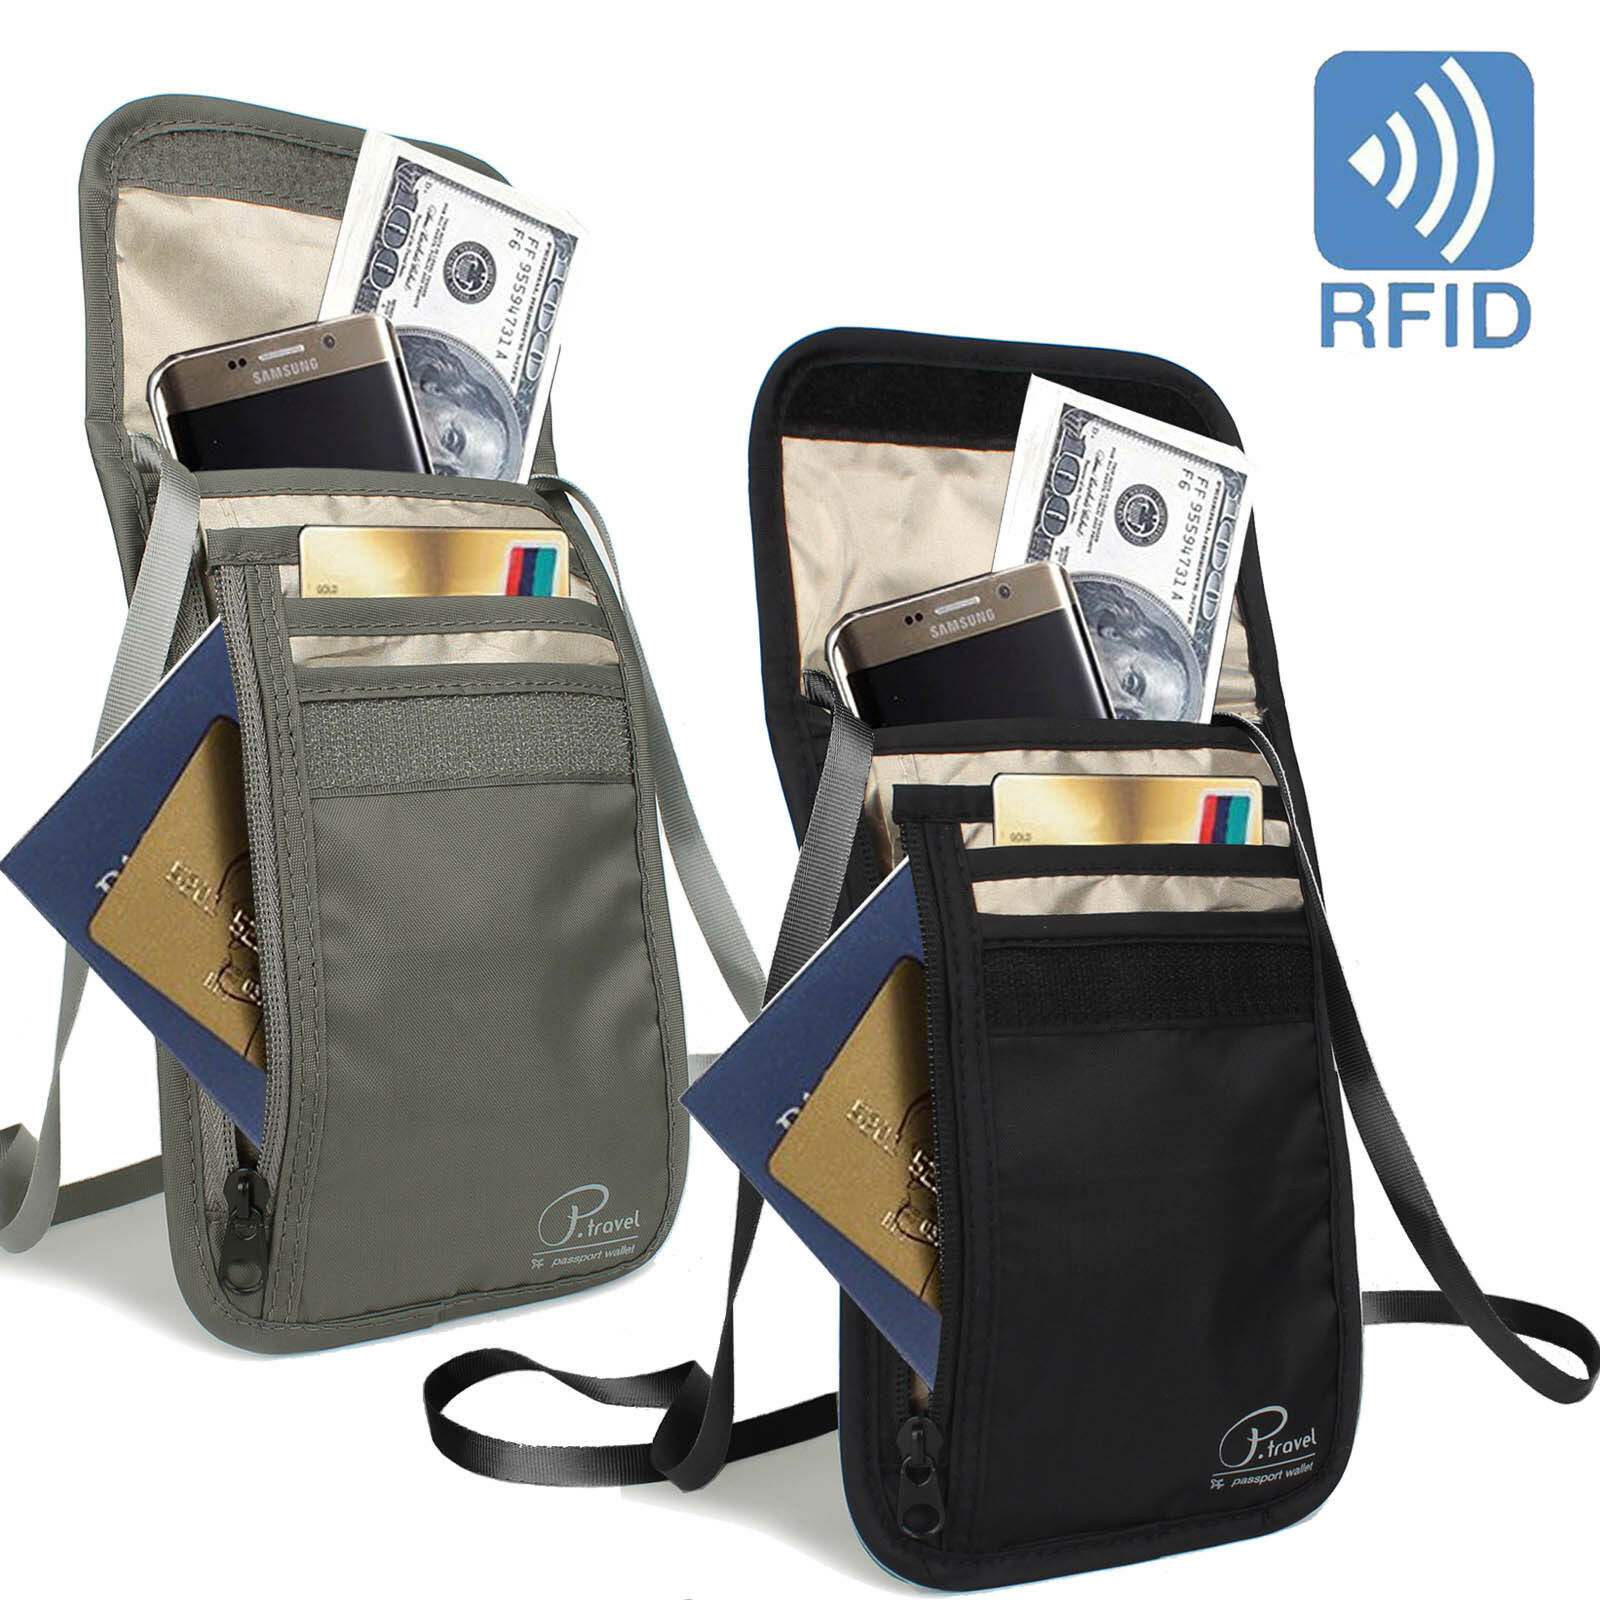 Travel Passport Neck Bag RFID Blocking Cell Phone Wallet Pouch Purse w... - s l1600